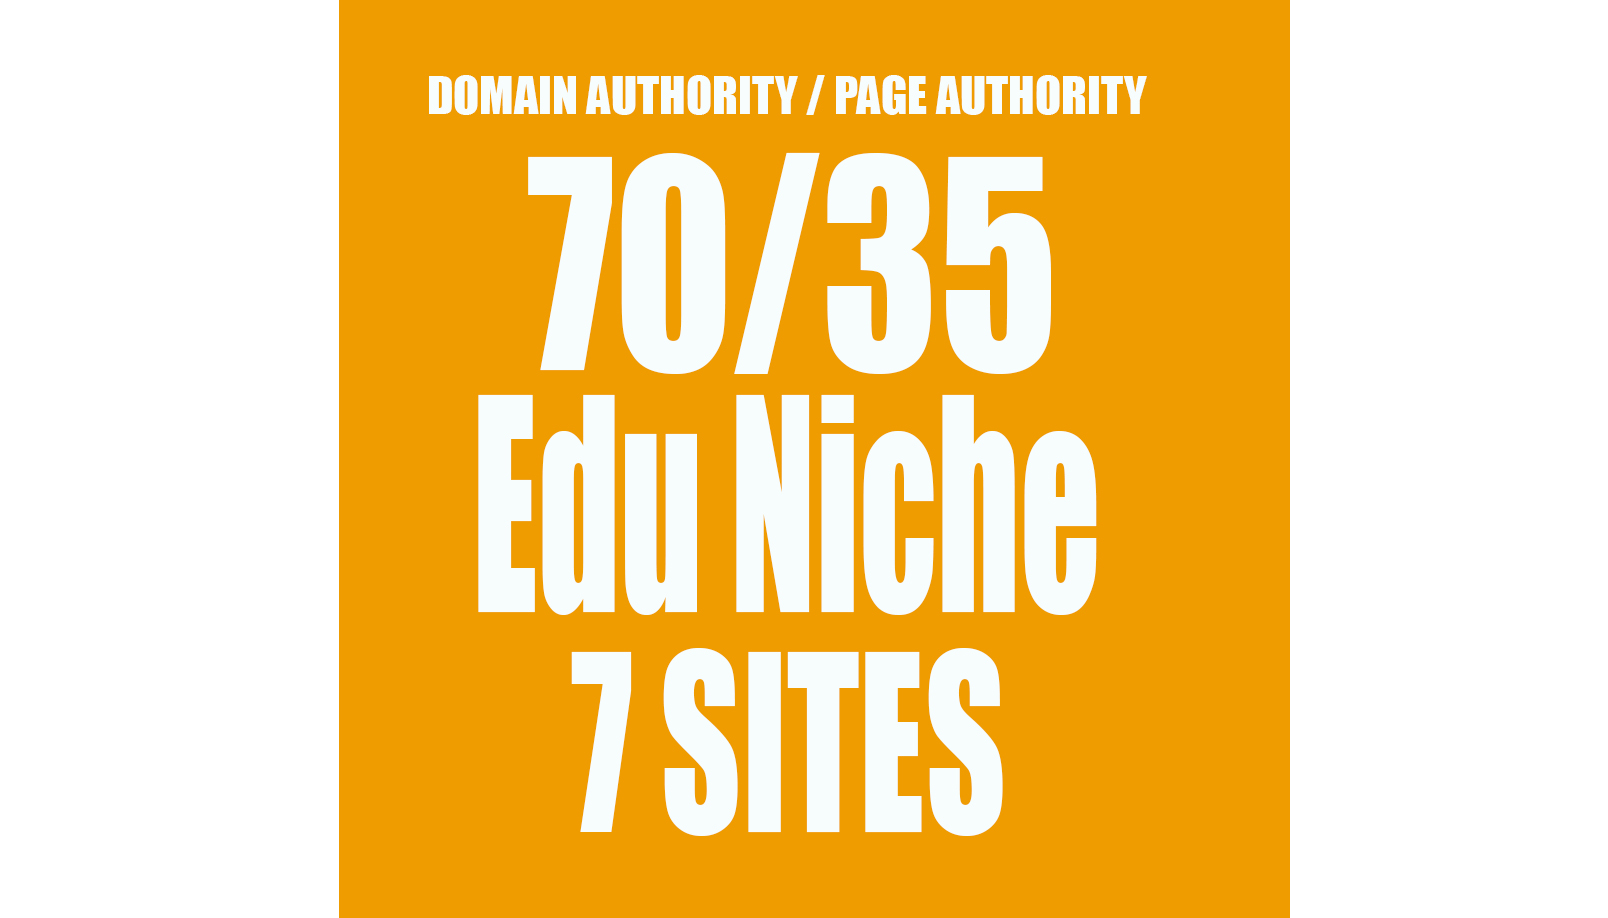 Permanent blogroll 7 sites DA70 EDUCATION CATEGORY